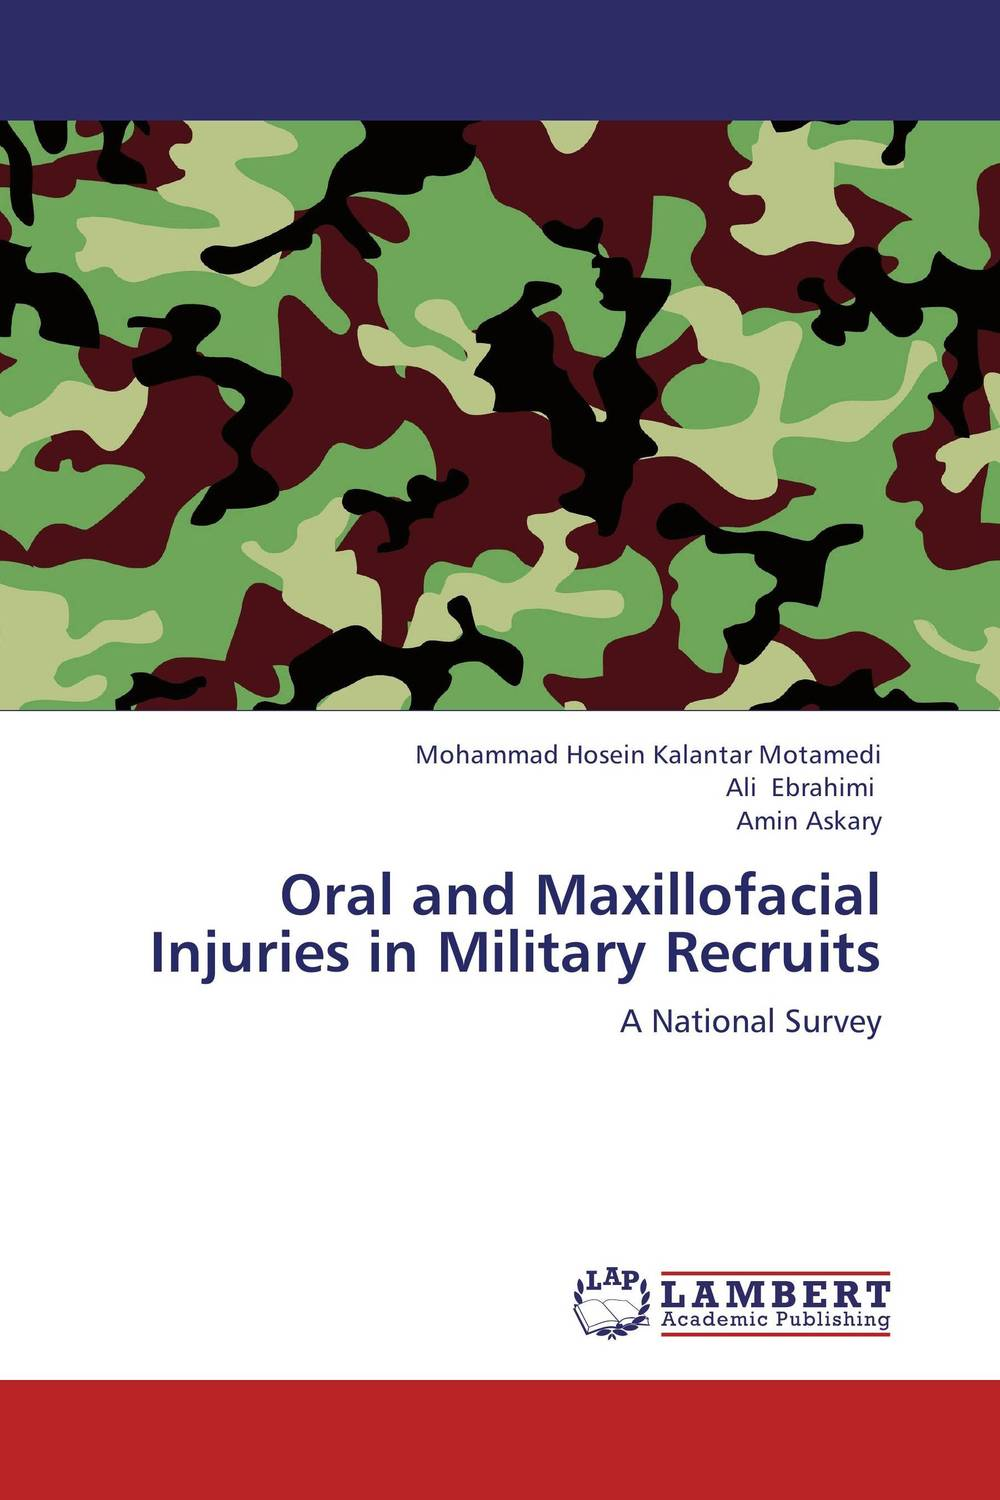 Oral and Maxillofacial Injuries in Military Recruits oral and maxillofacial injuries in military recruits